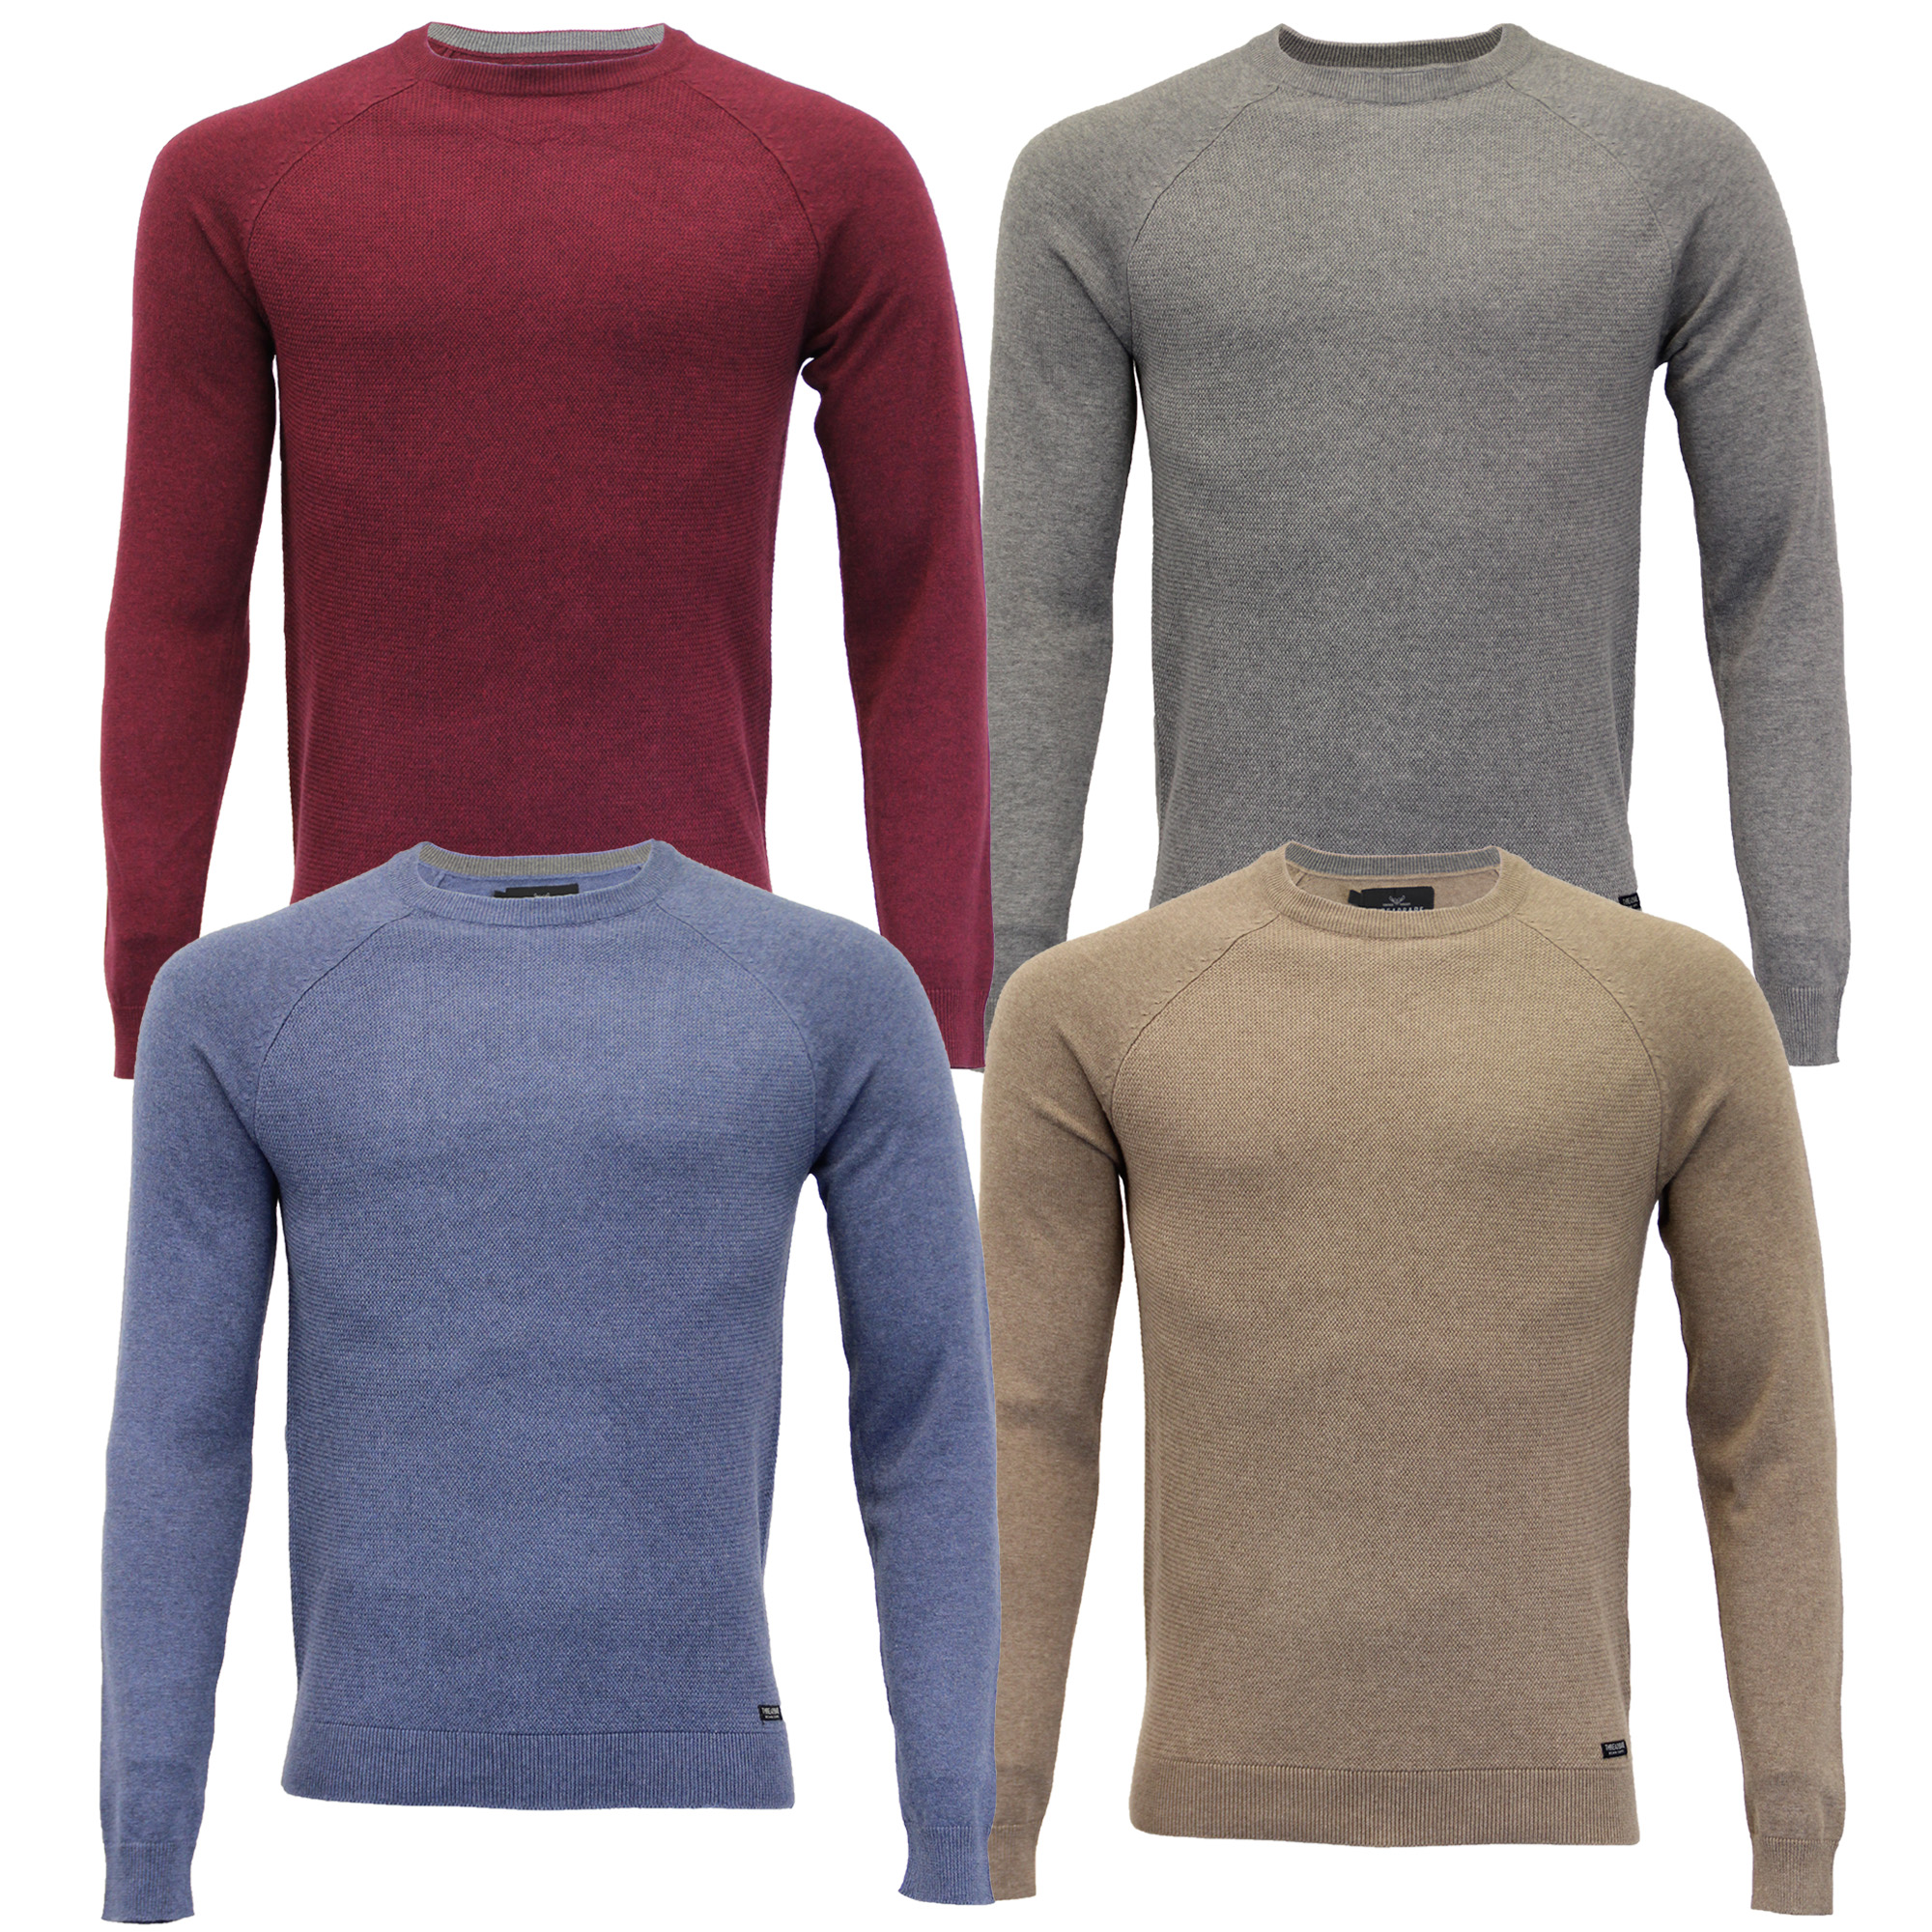 Mens-Jumper-Threadbare-Knitted-Sweater-Pullover-Top-Crew-Neck-Casual-Winter-New thumbnail 4